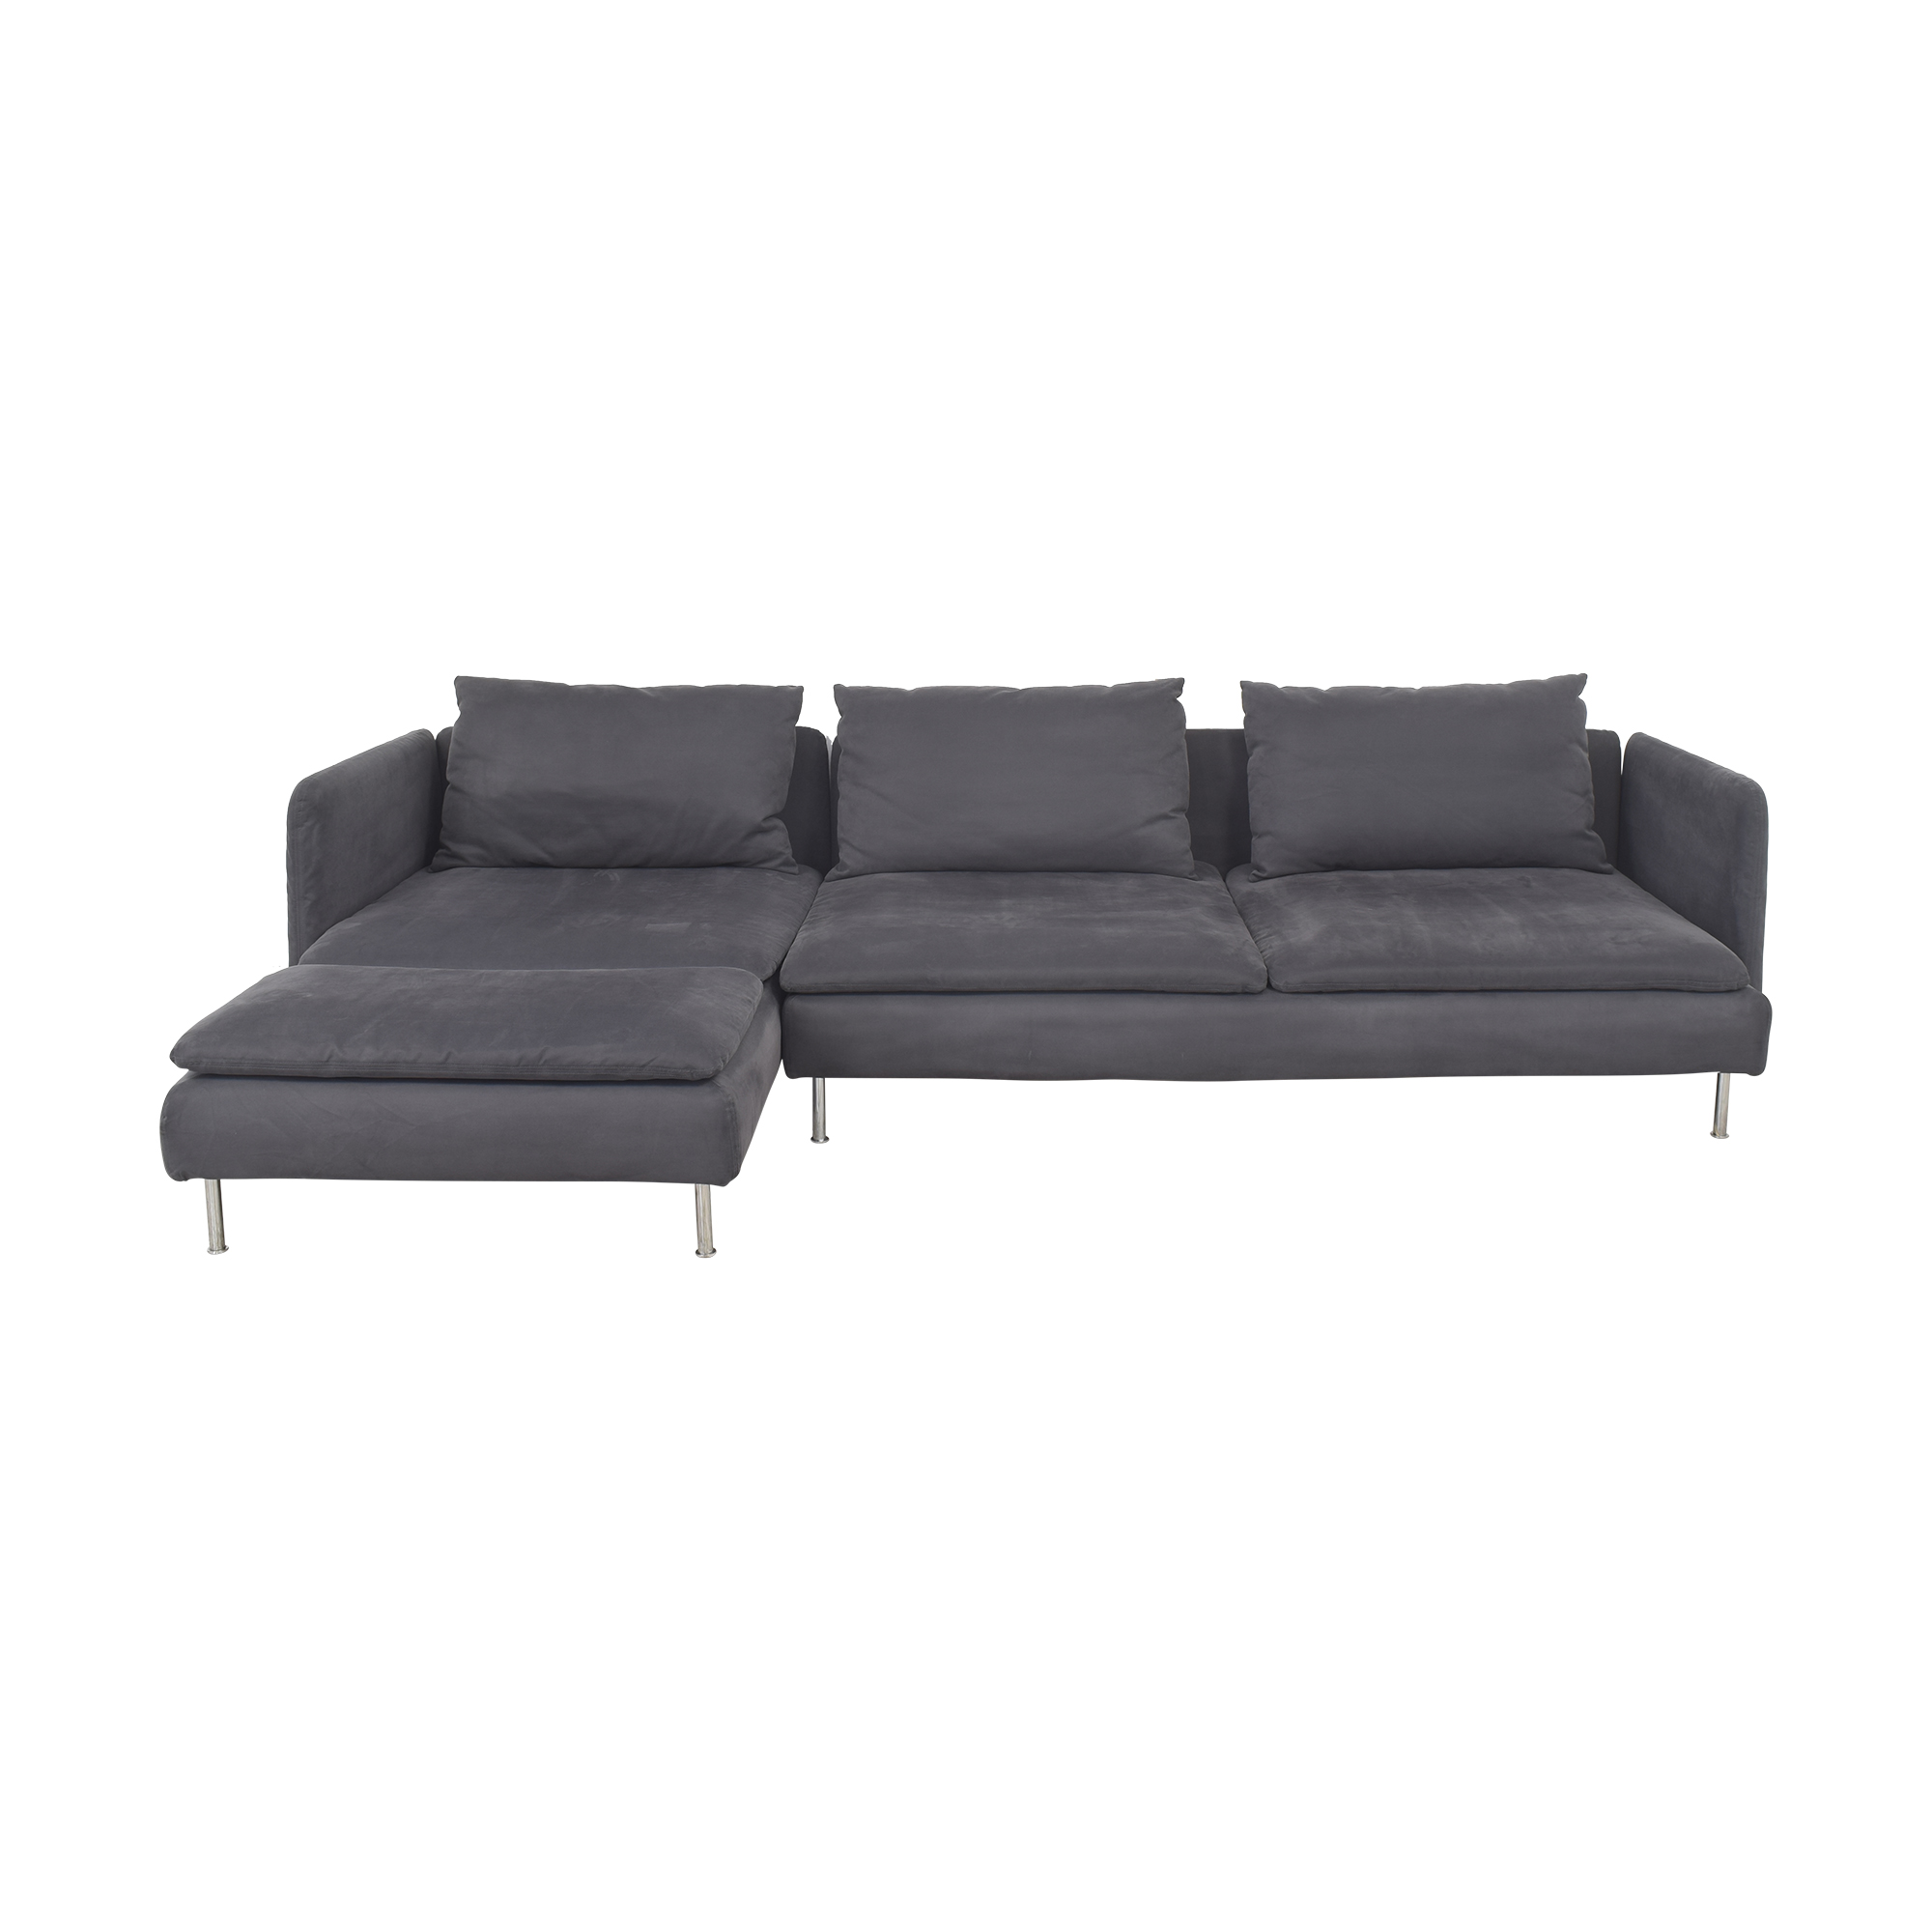 IKEA IKEA Söderhamn Four Seat Sectional with Chaise nyc